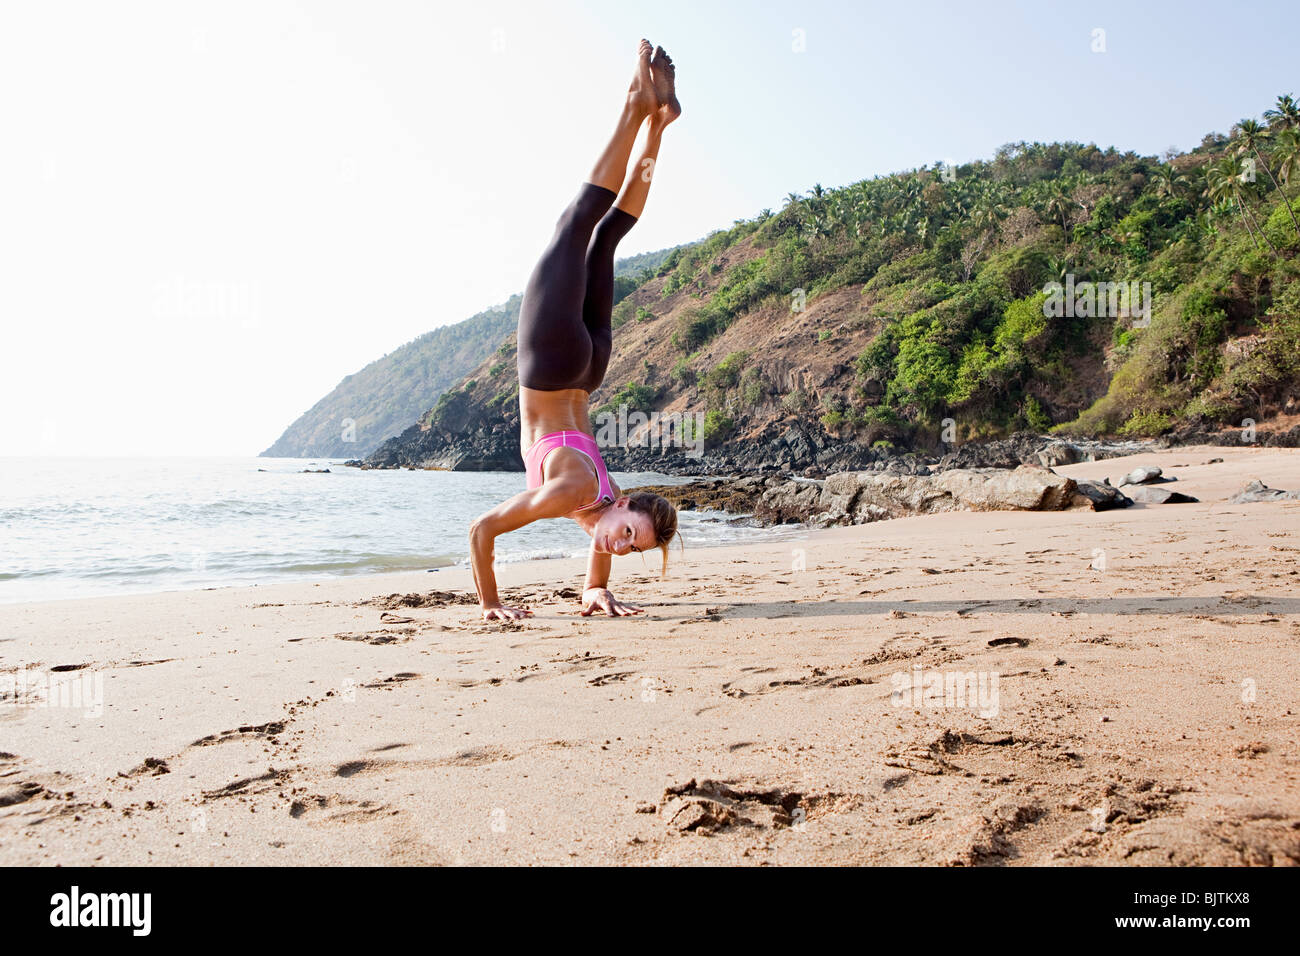 Woman doing handstand on beach - Stock Image